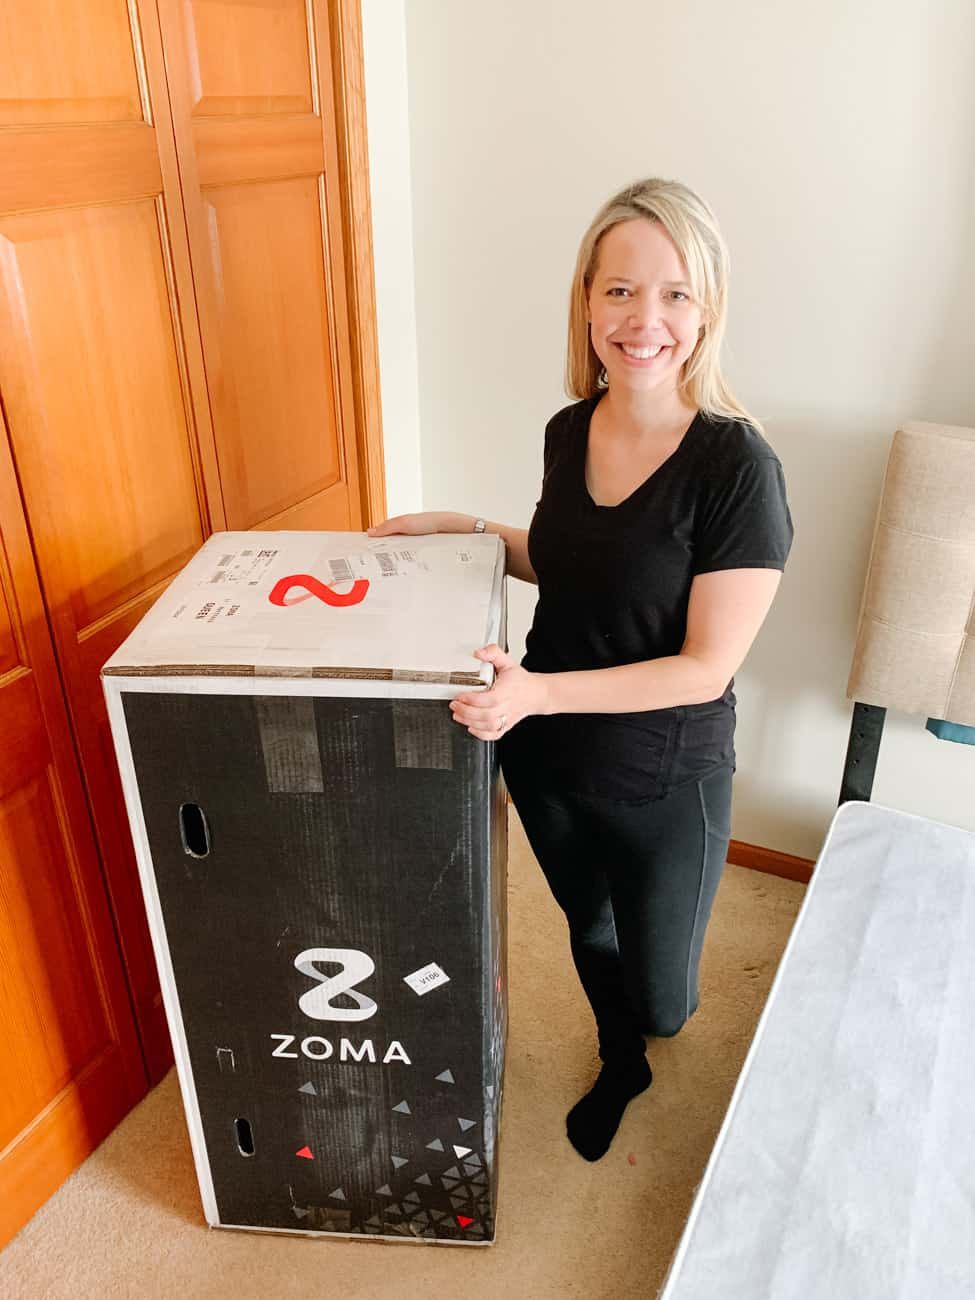 Zoma mattress bed in a box next to a smiling woman